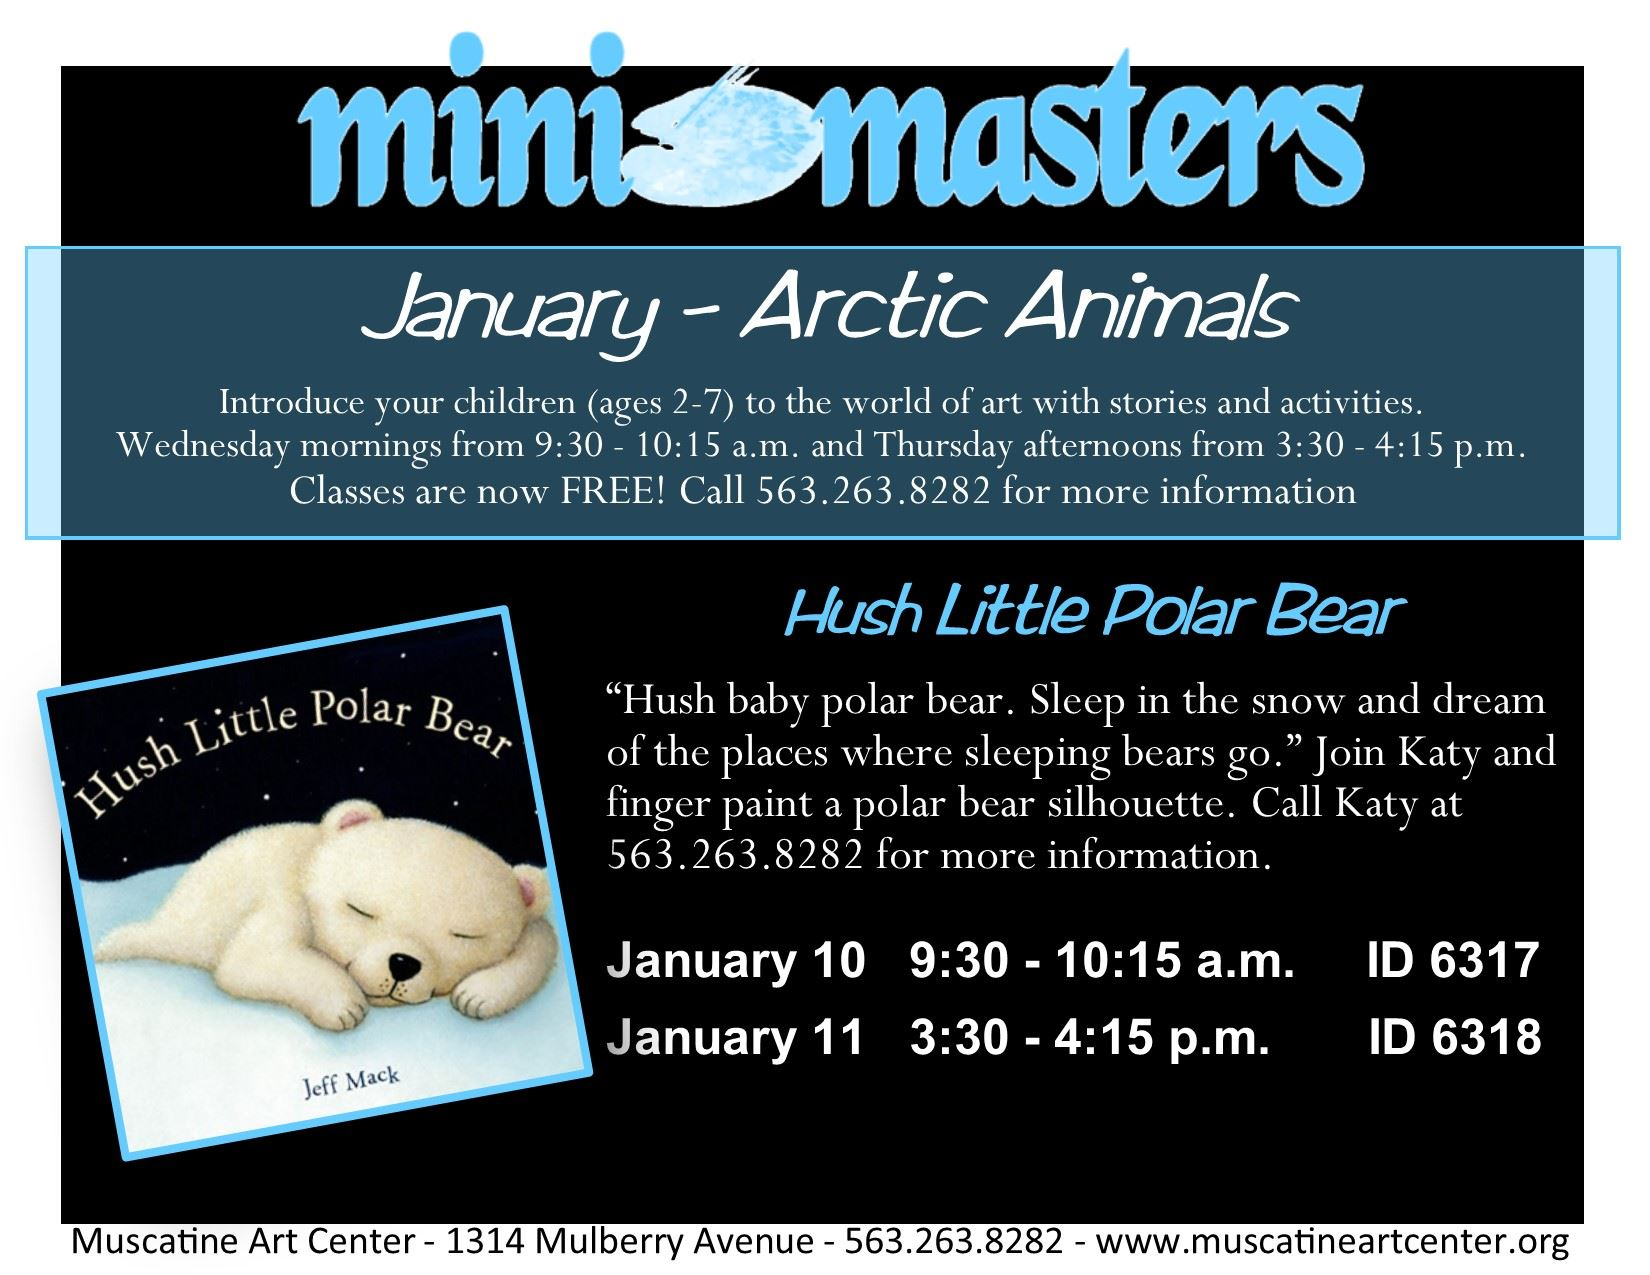 January 10-11 - Mini Masters - Hush Little Polar Bear